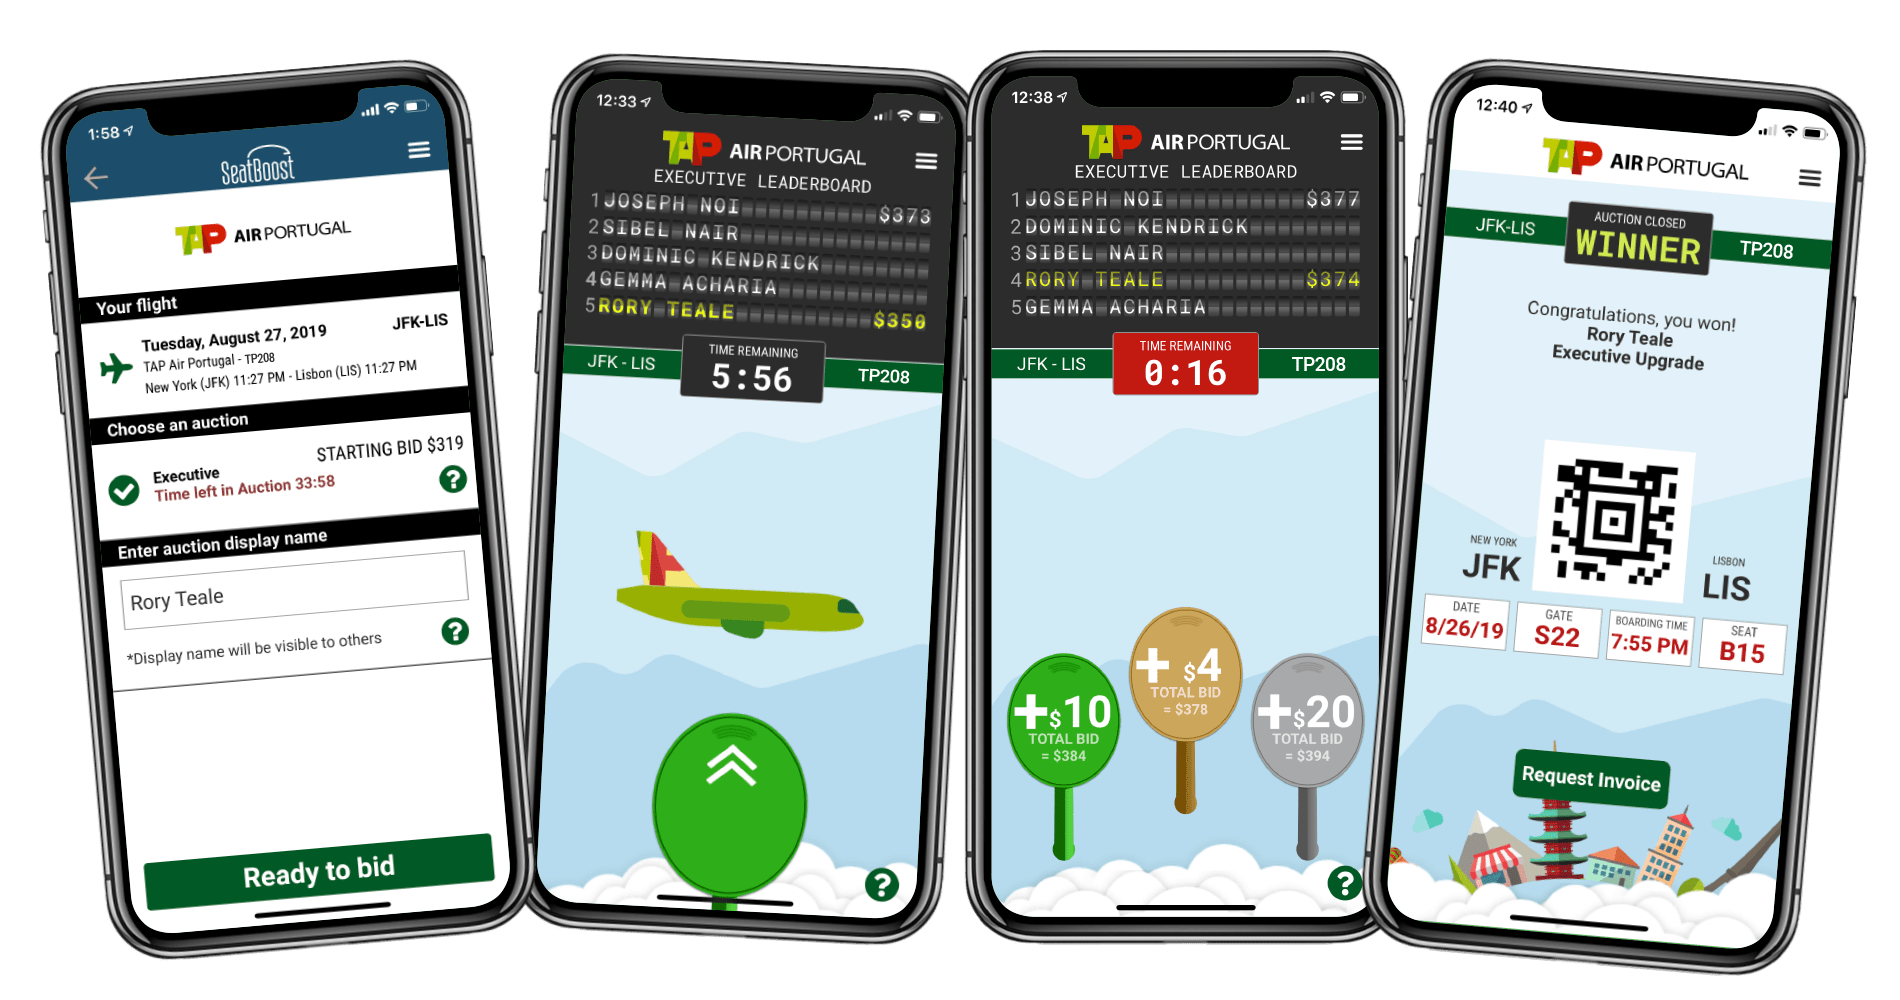 SeatBoost/TAP Air Portugal upgrade apps. (Image courtesy of SeatBoost)